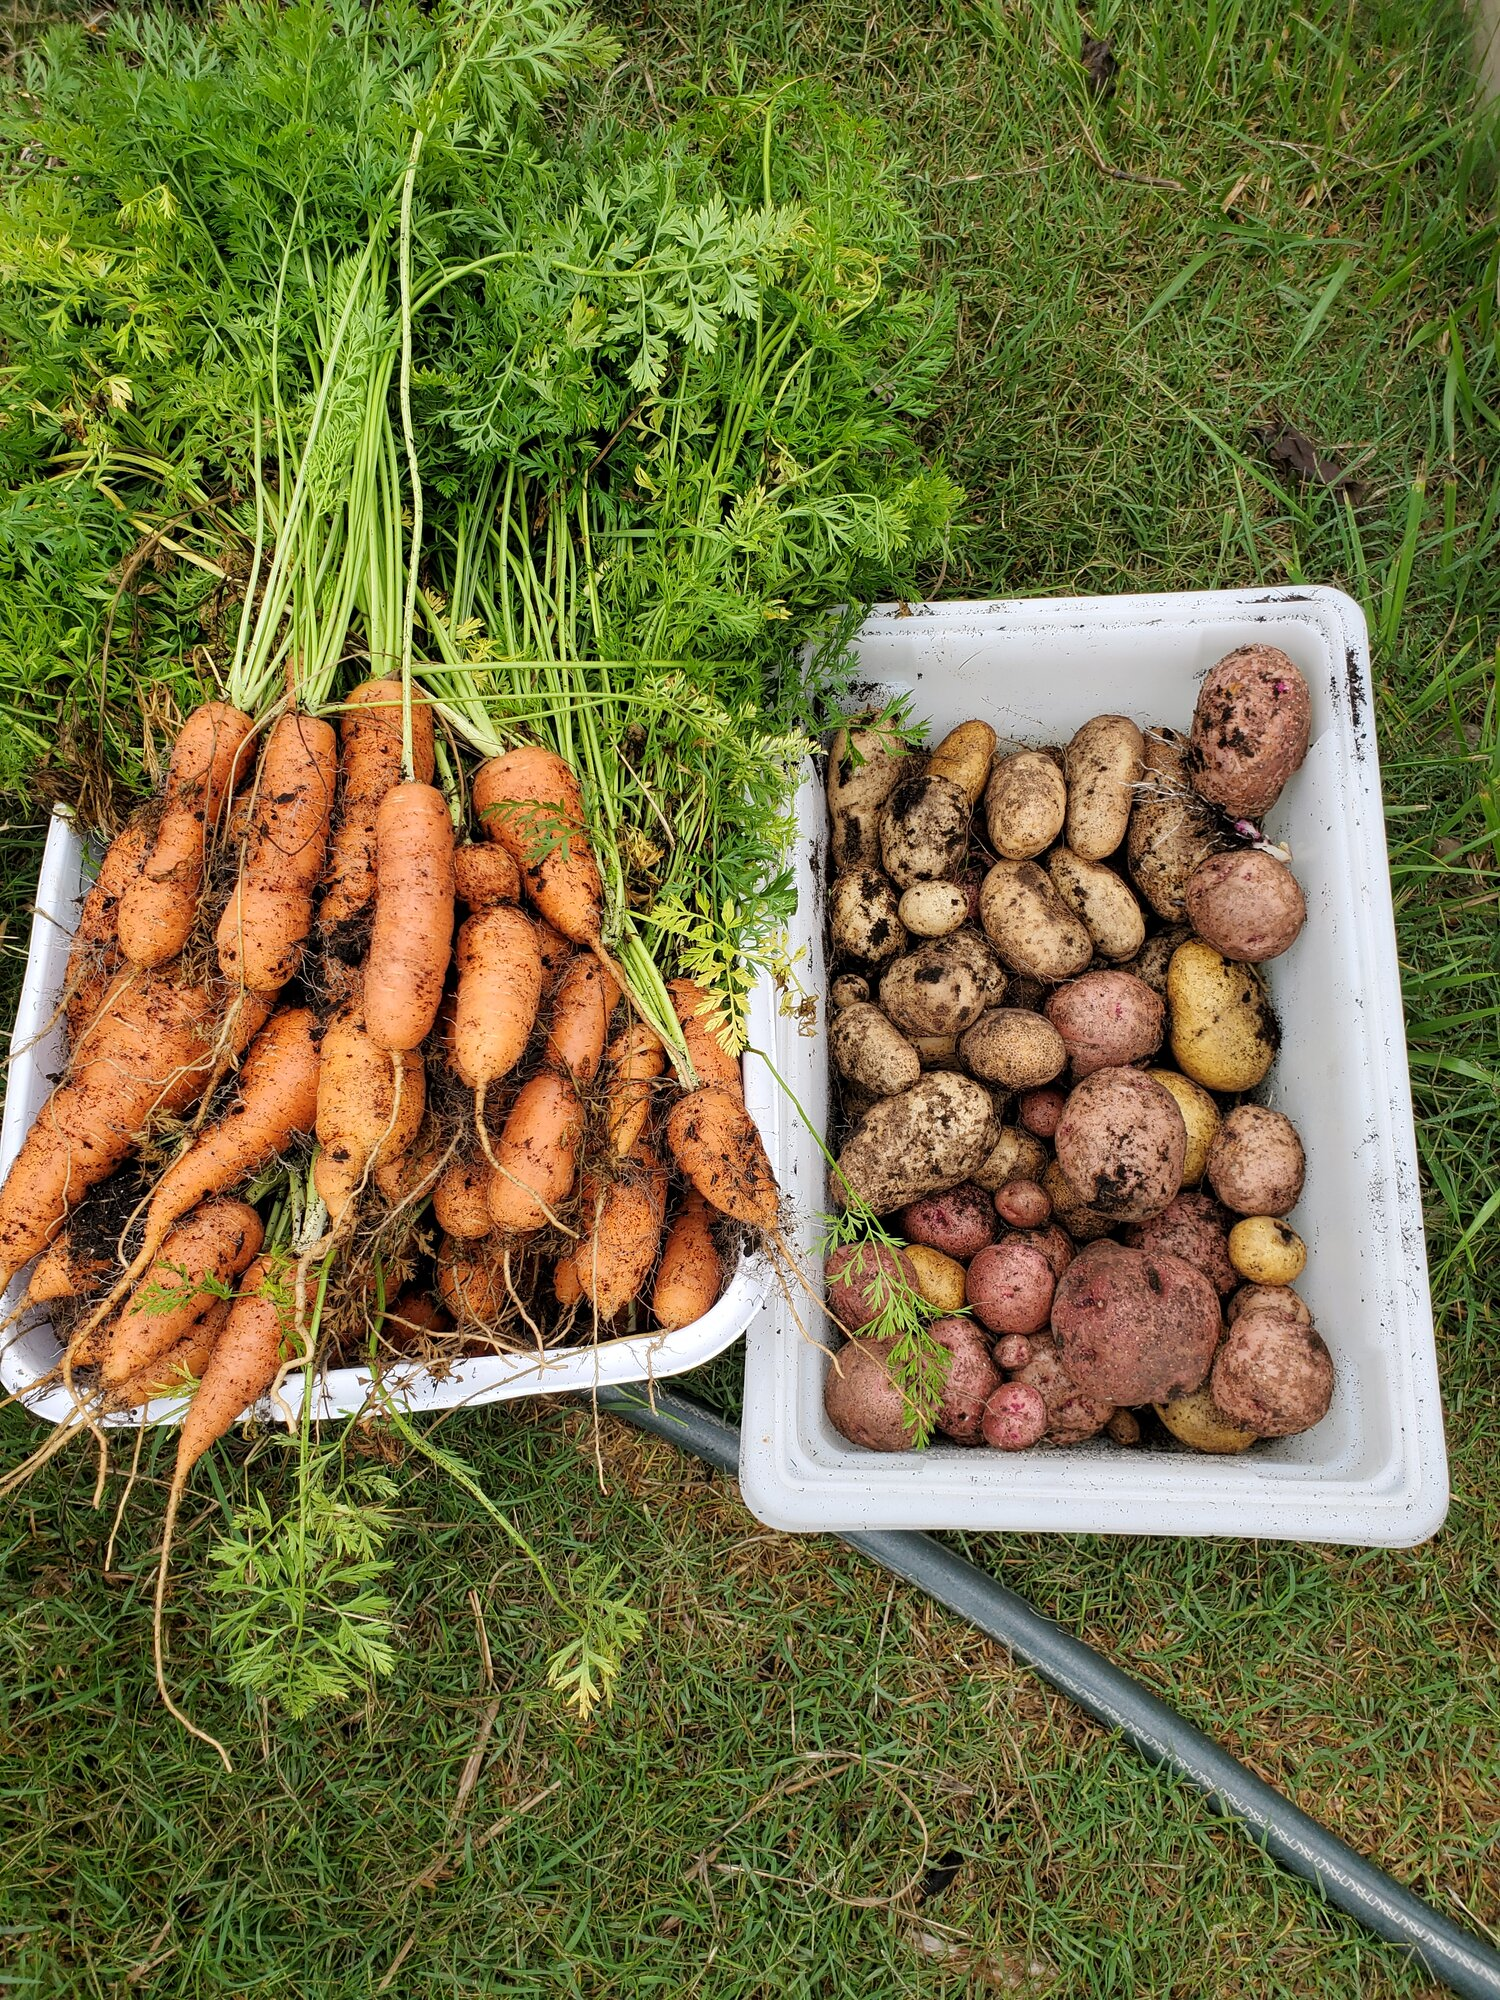 carrots & potatoes.jpg